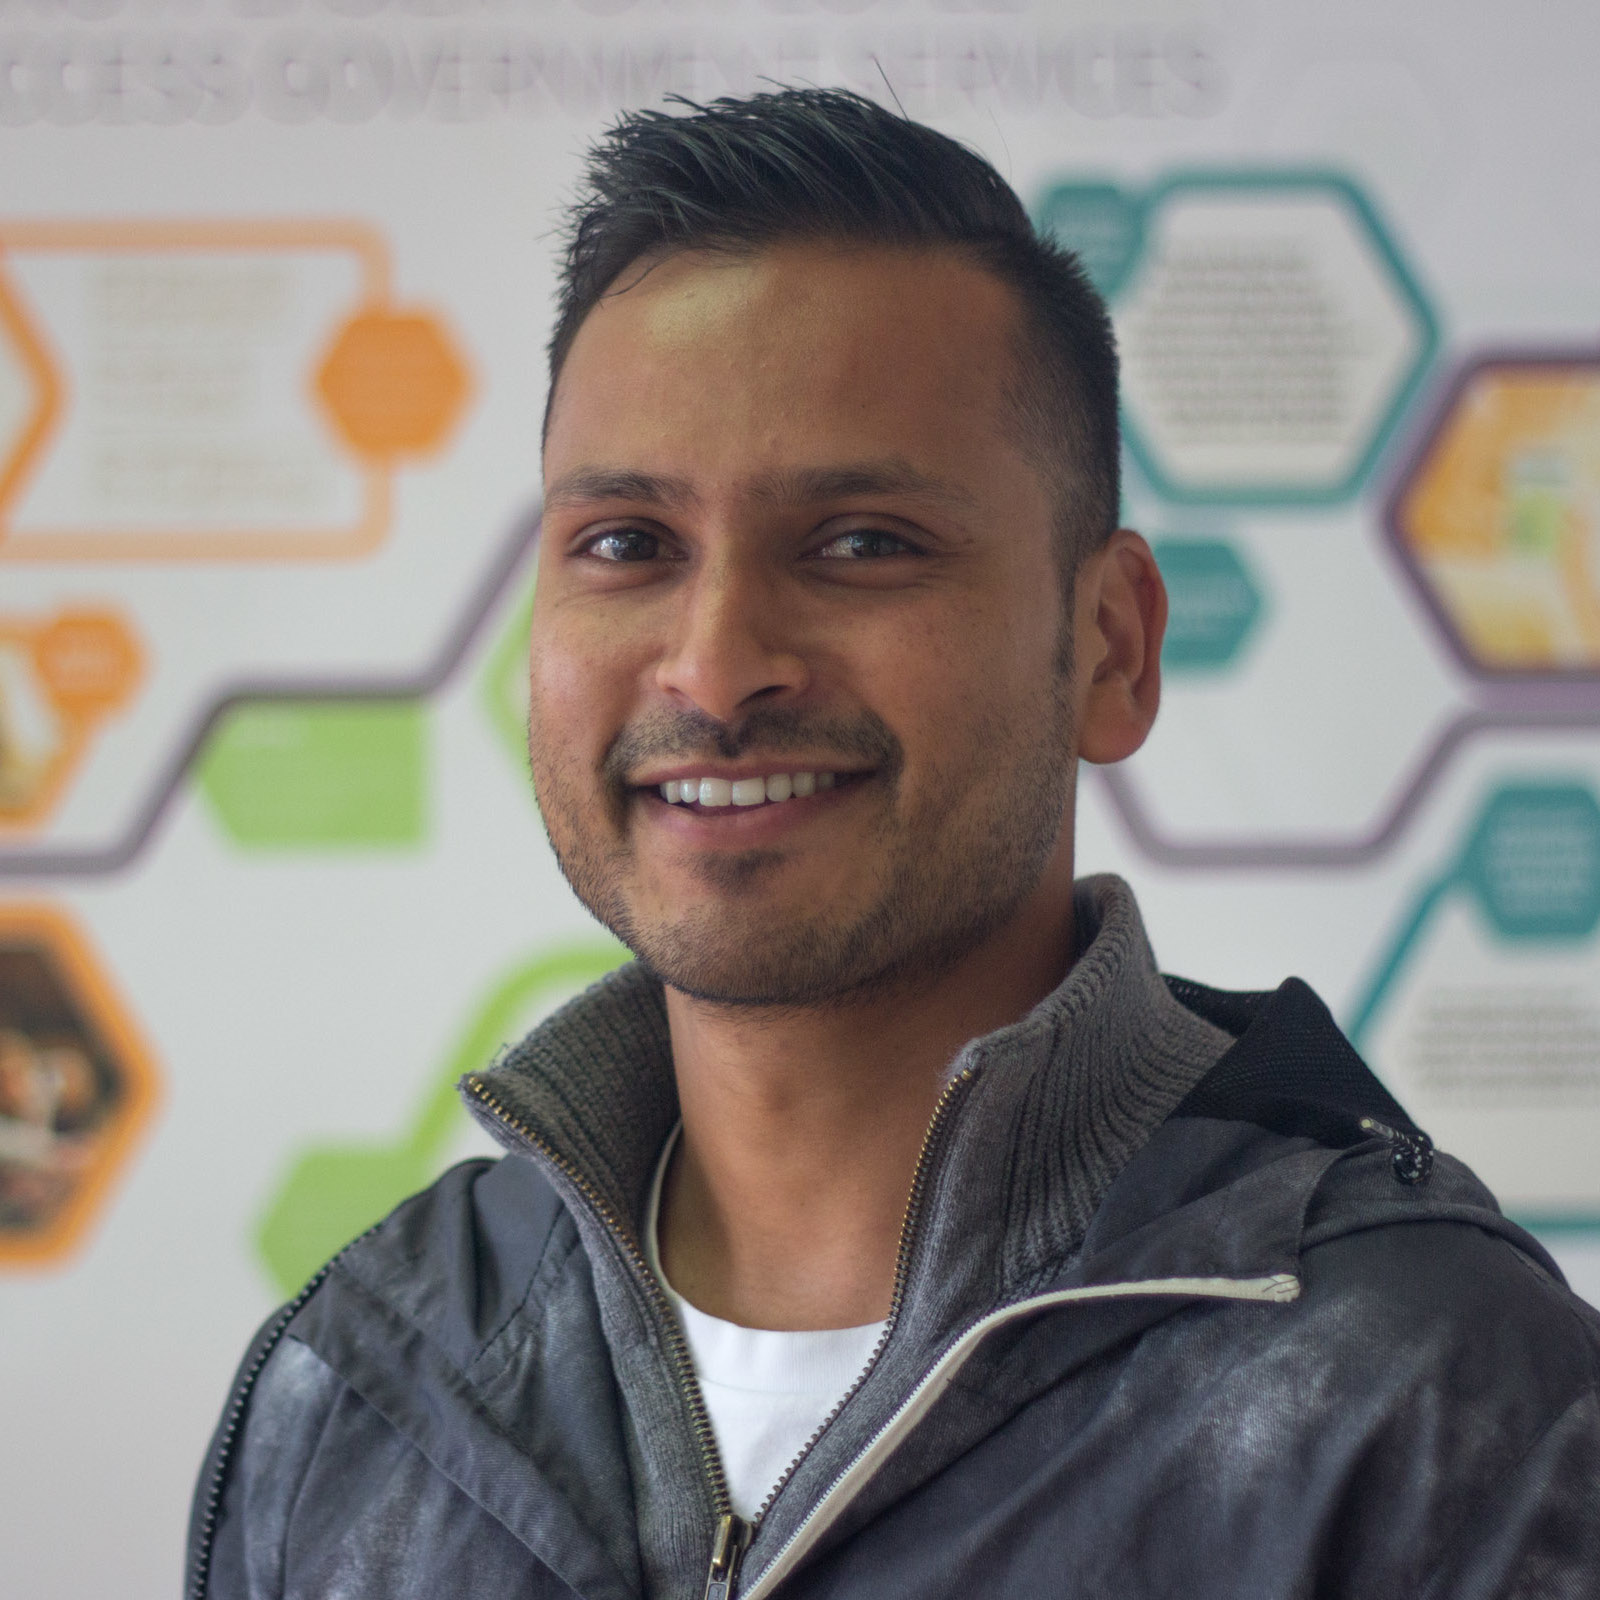 Team member named Ross Patel